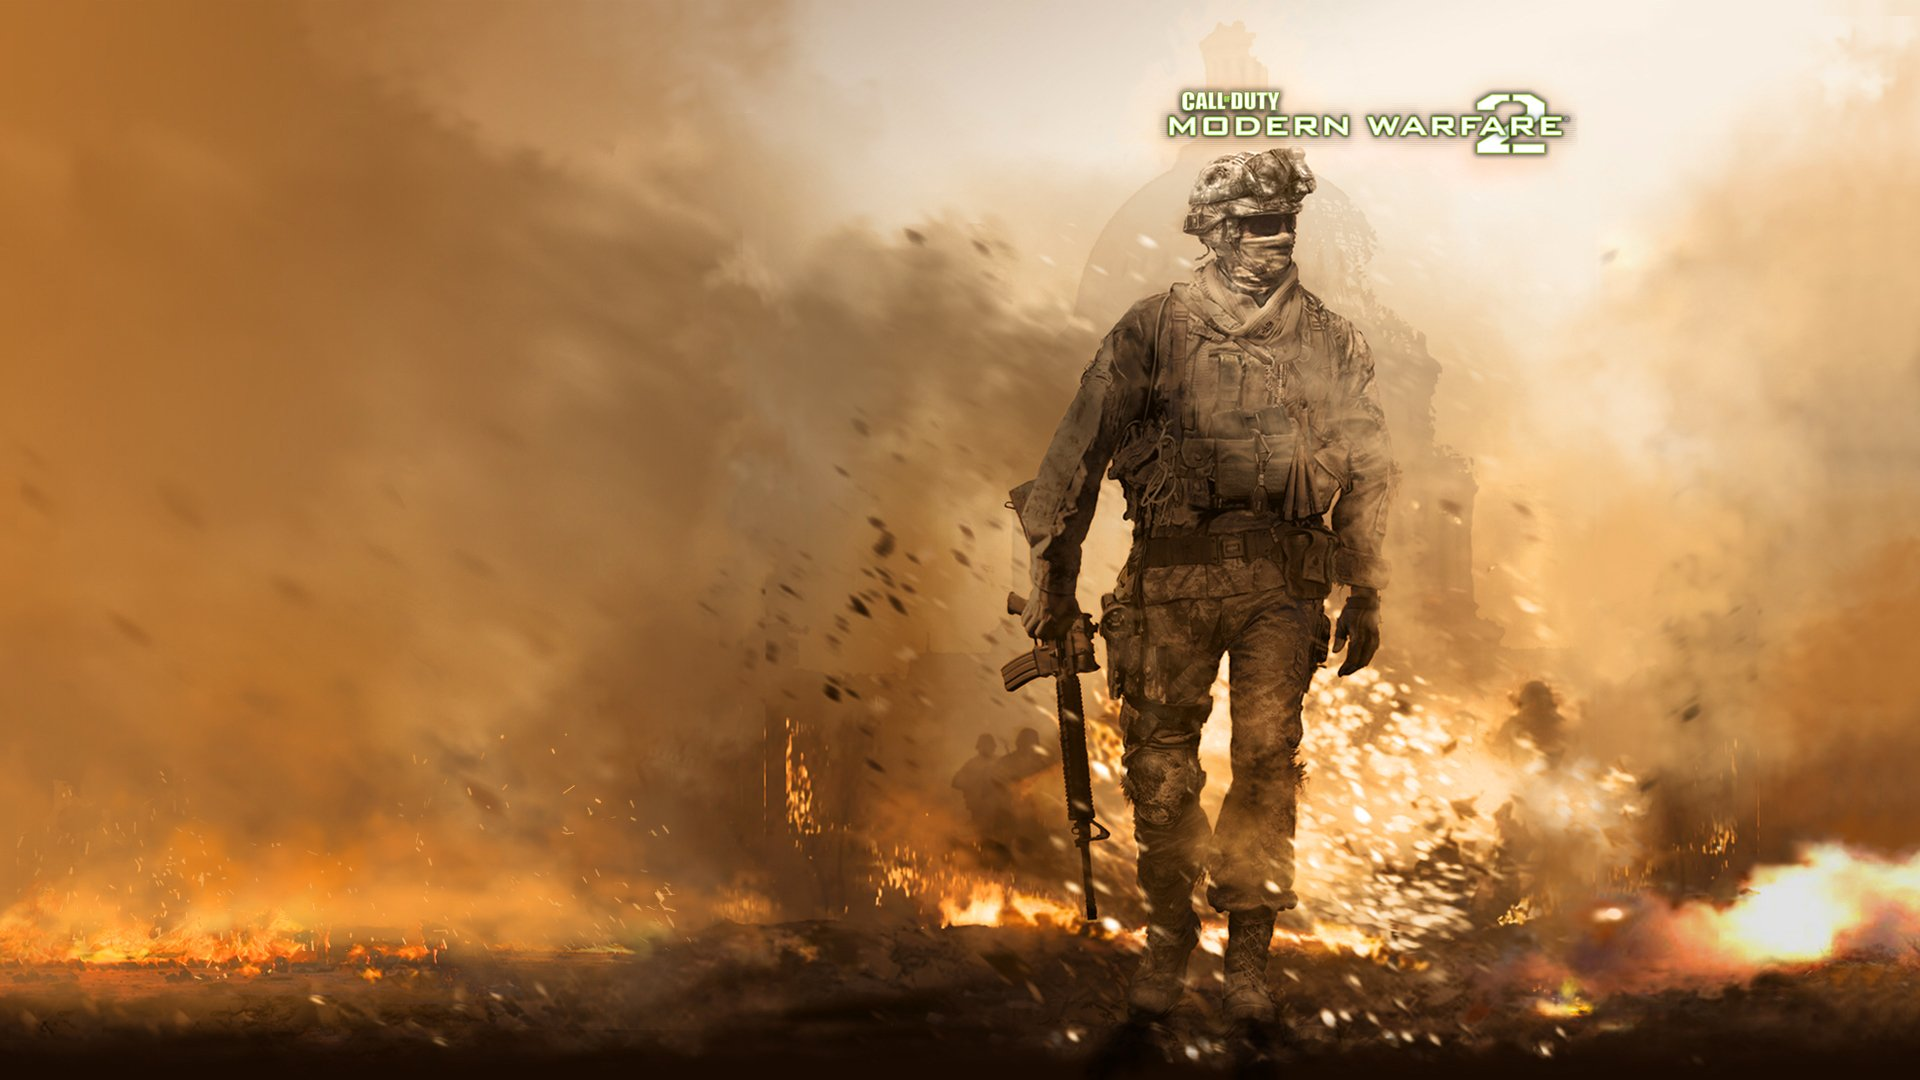 51 Modern Warfare 2 Wallpaper On Wallpapersafari